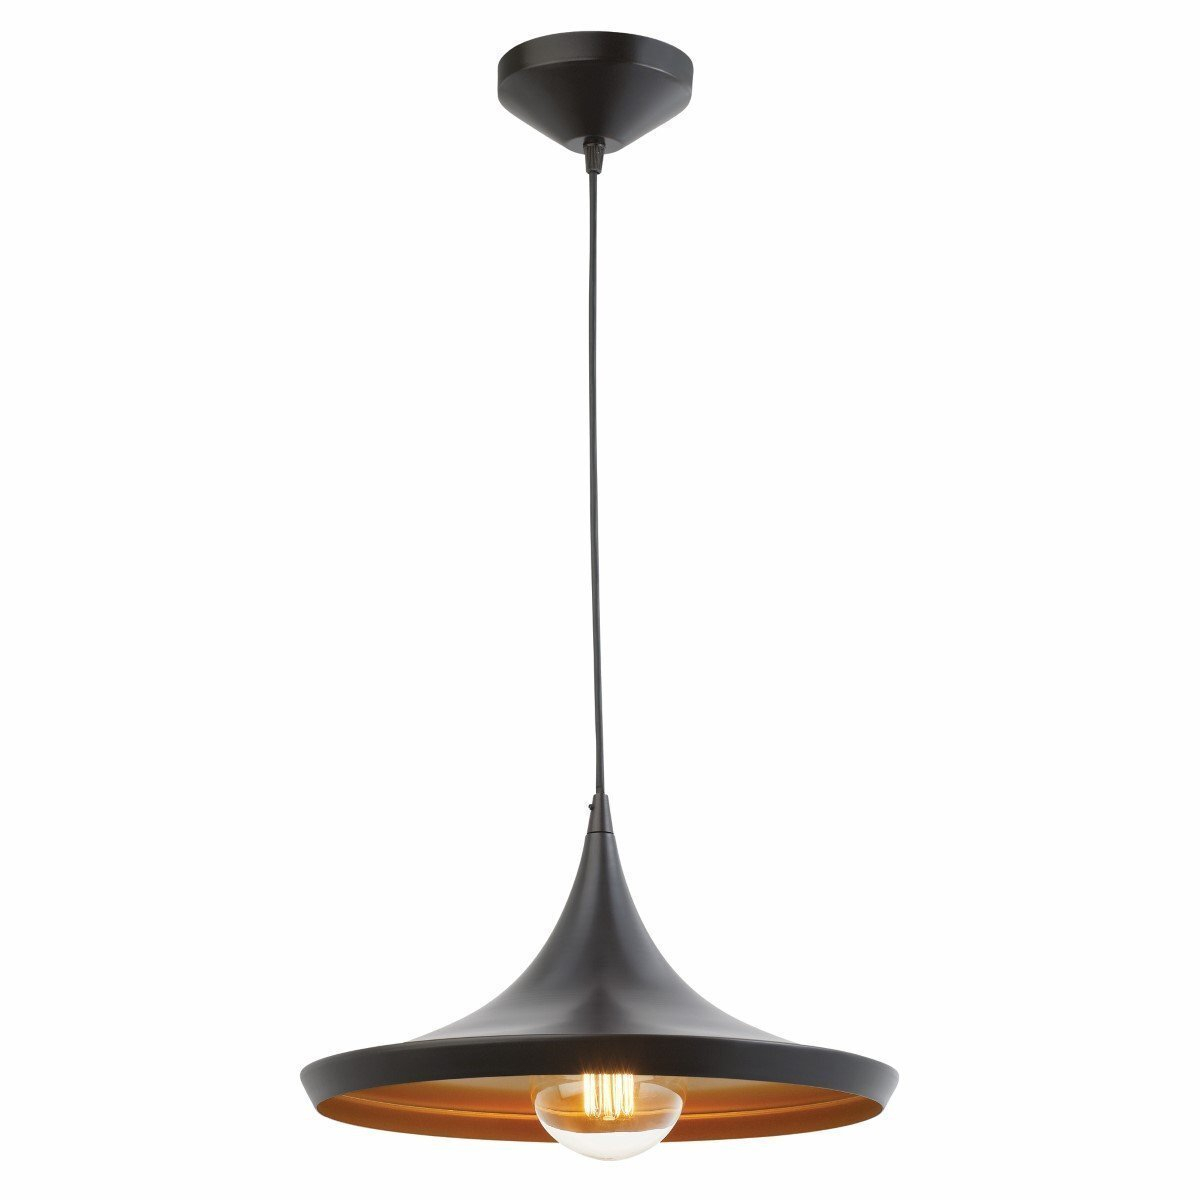 Details About Pendant Light Led Ceiling Lights Lamp Shade Industrial Cafe Lighting Kitchen Bar Intended For Akash Industrial Vintage 1 Light Geometric Pendants (View 9 of 30)